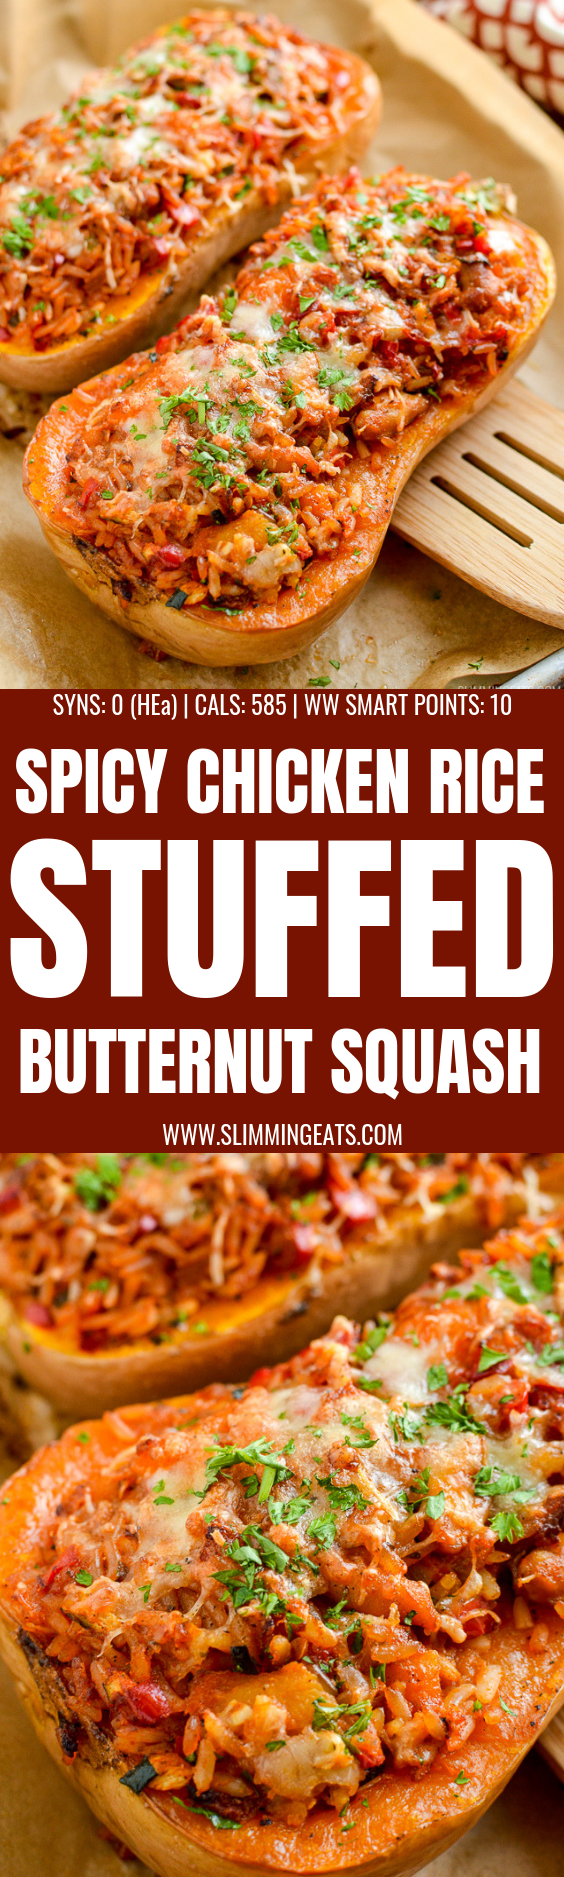 Sweet Roasted Butternut Squash Stuffed with Spicy Chicken and Rice topped with melted golden cheese - a perfect meal all in one. | gluten free, Slimming World and Weight Watchers friendly